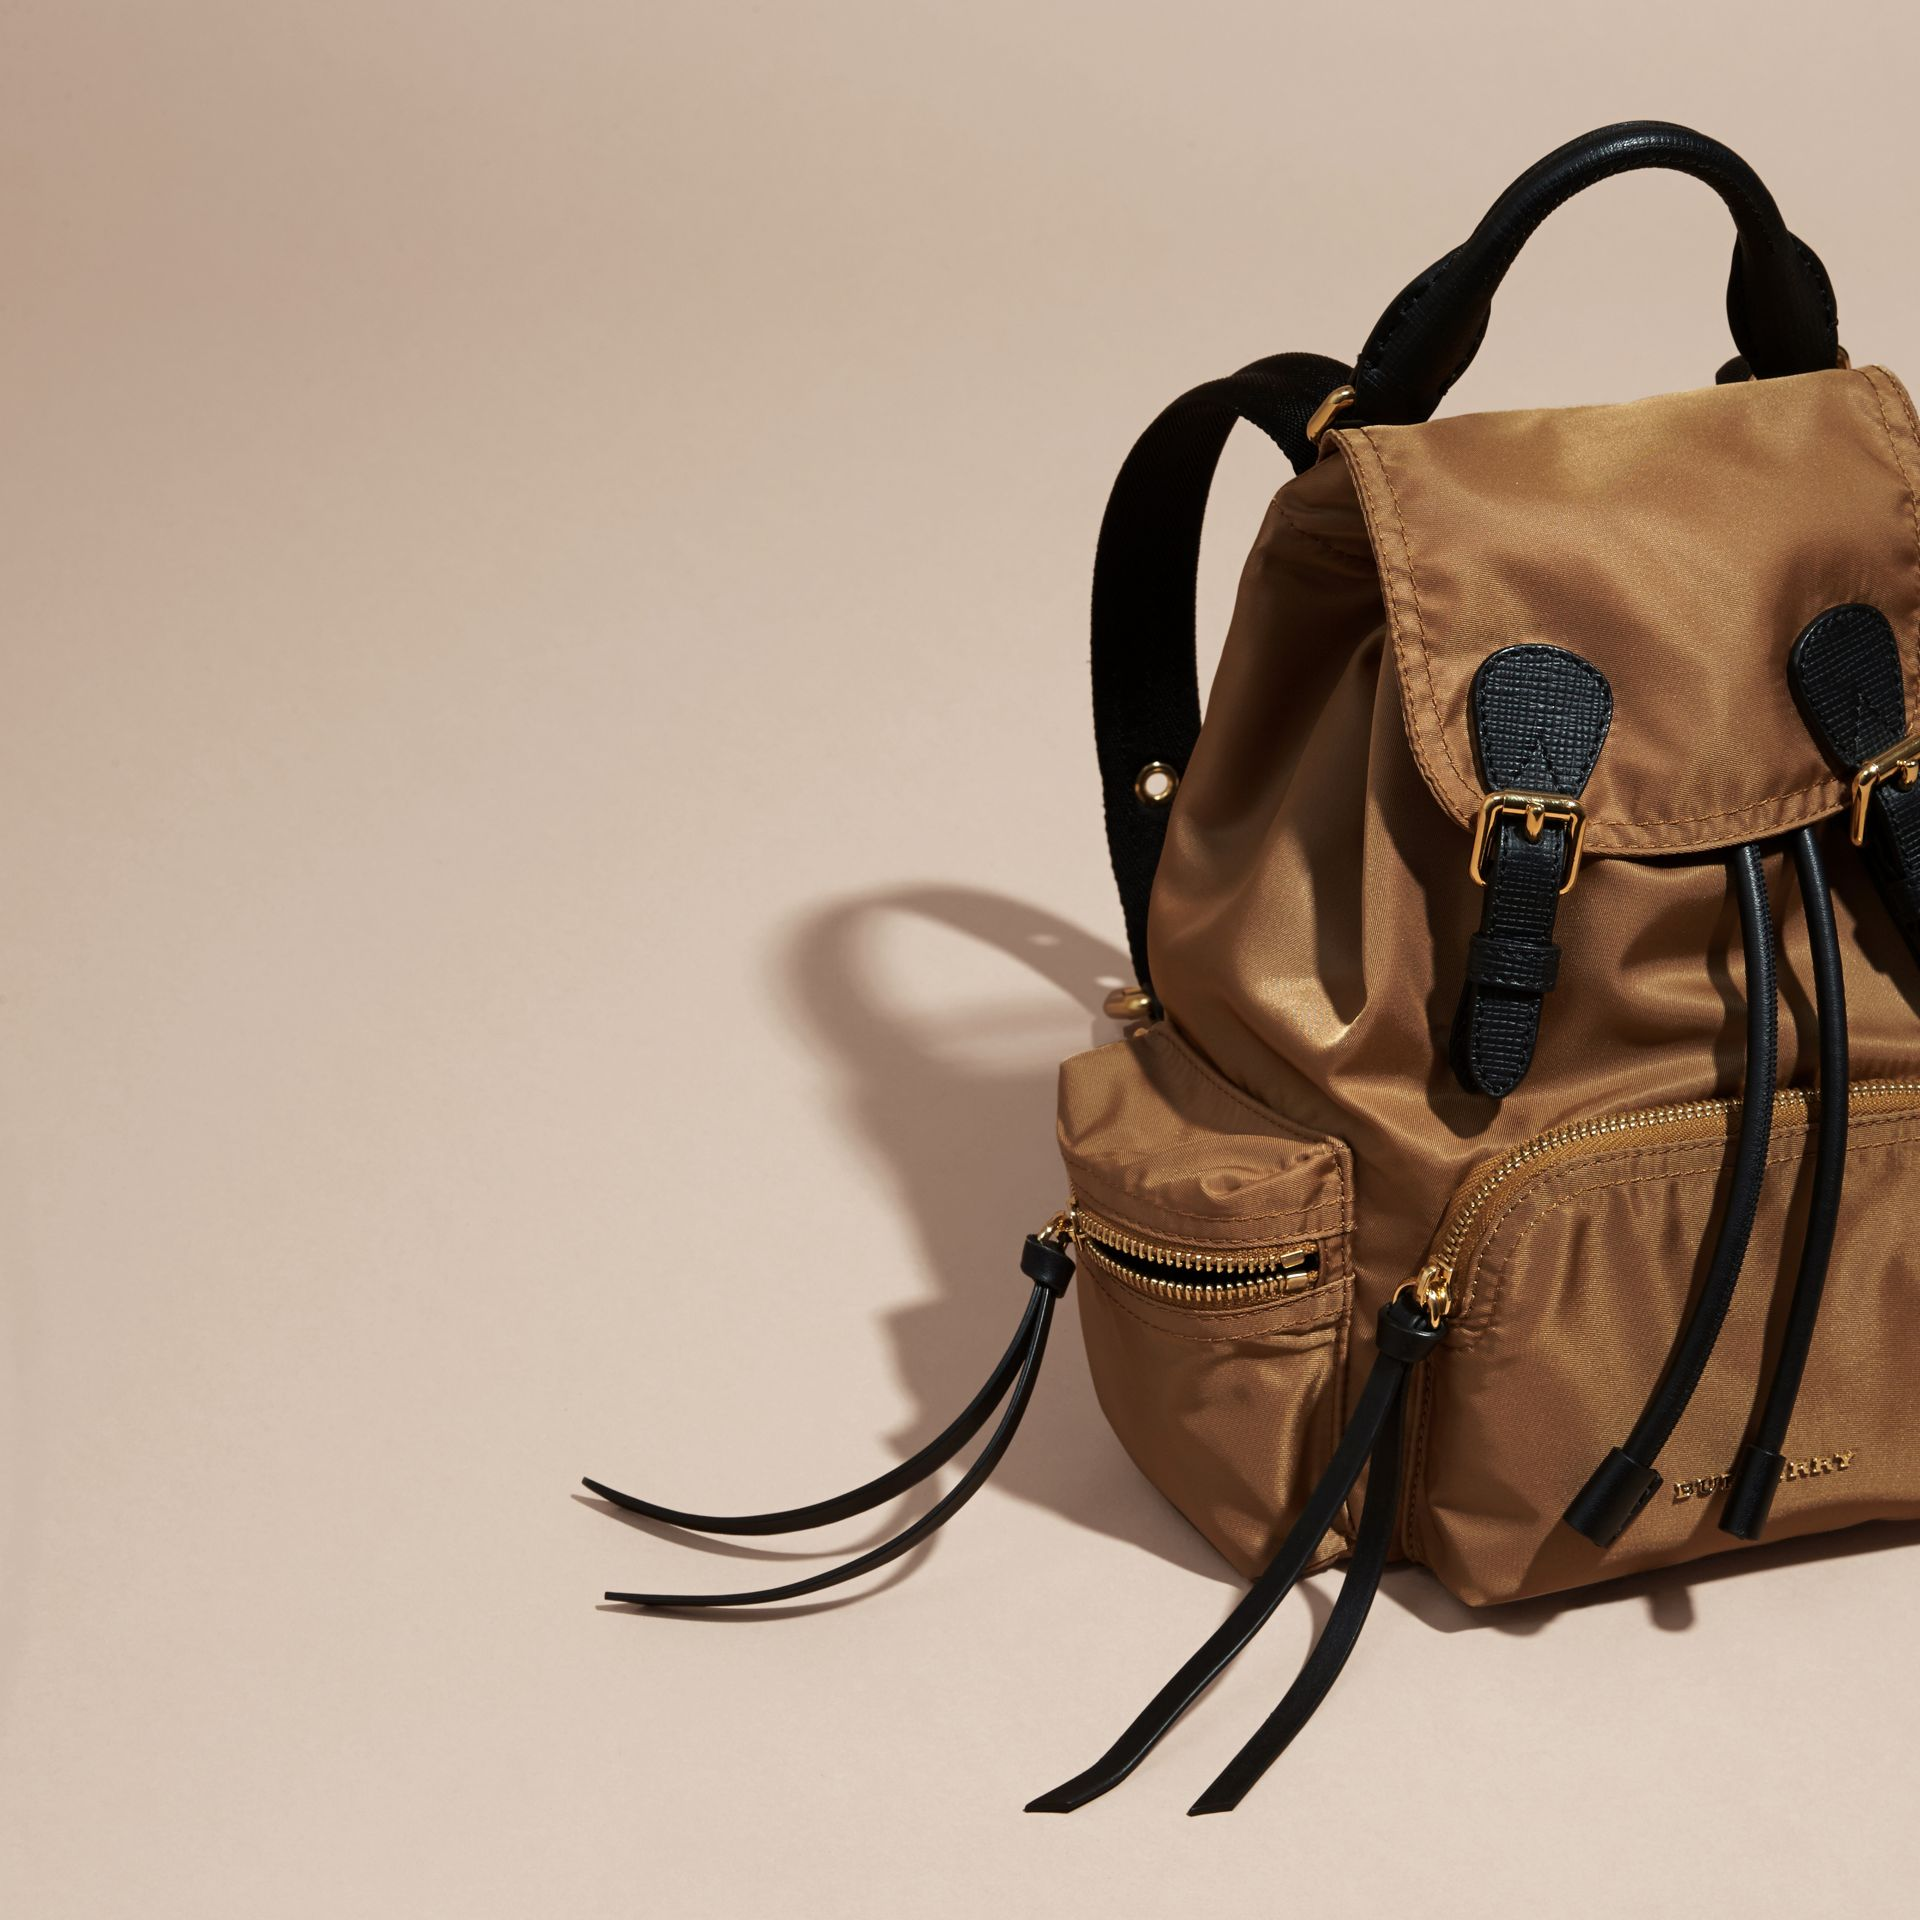 The Small Rucksack in Technical Nylon and Leather in Light Flax - Women | Burberry - gallery image 6